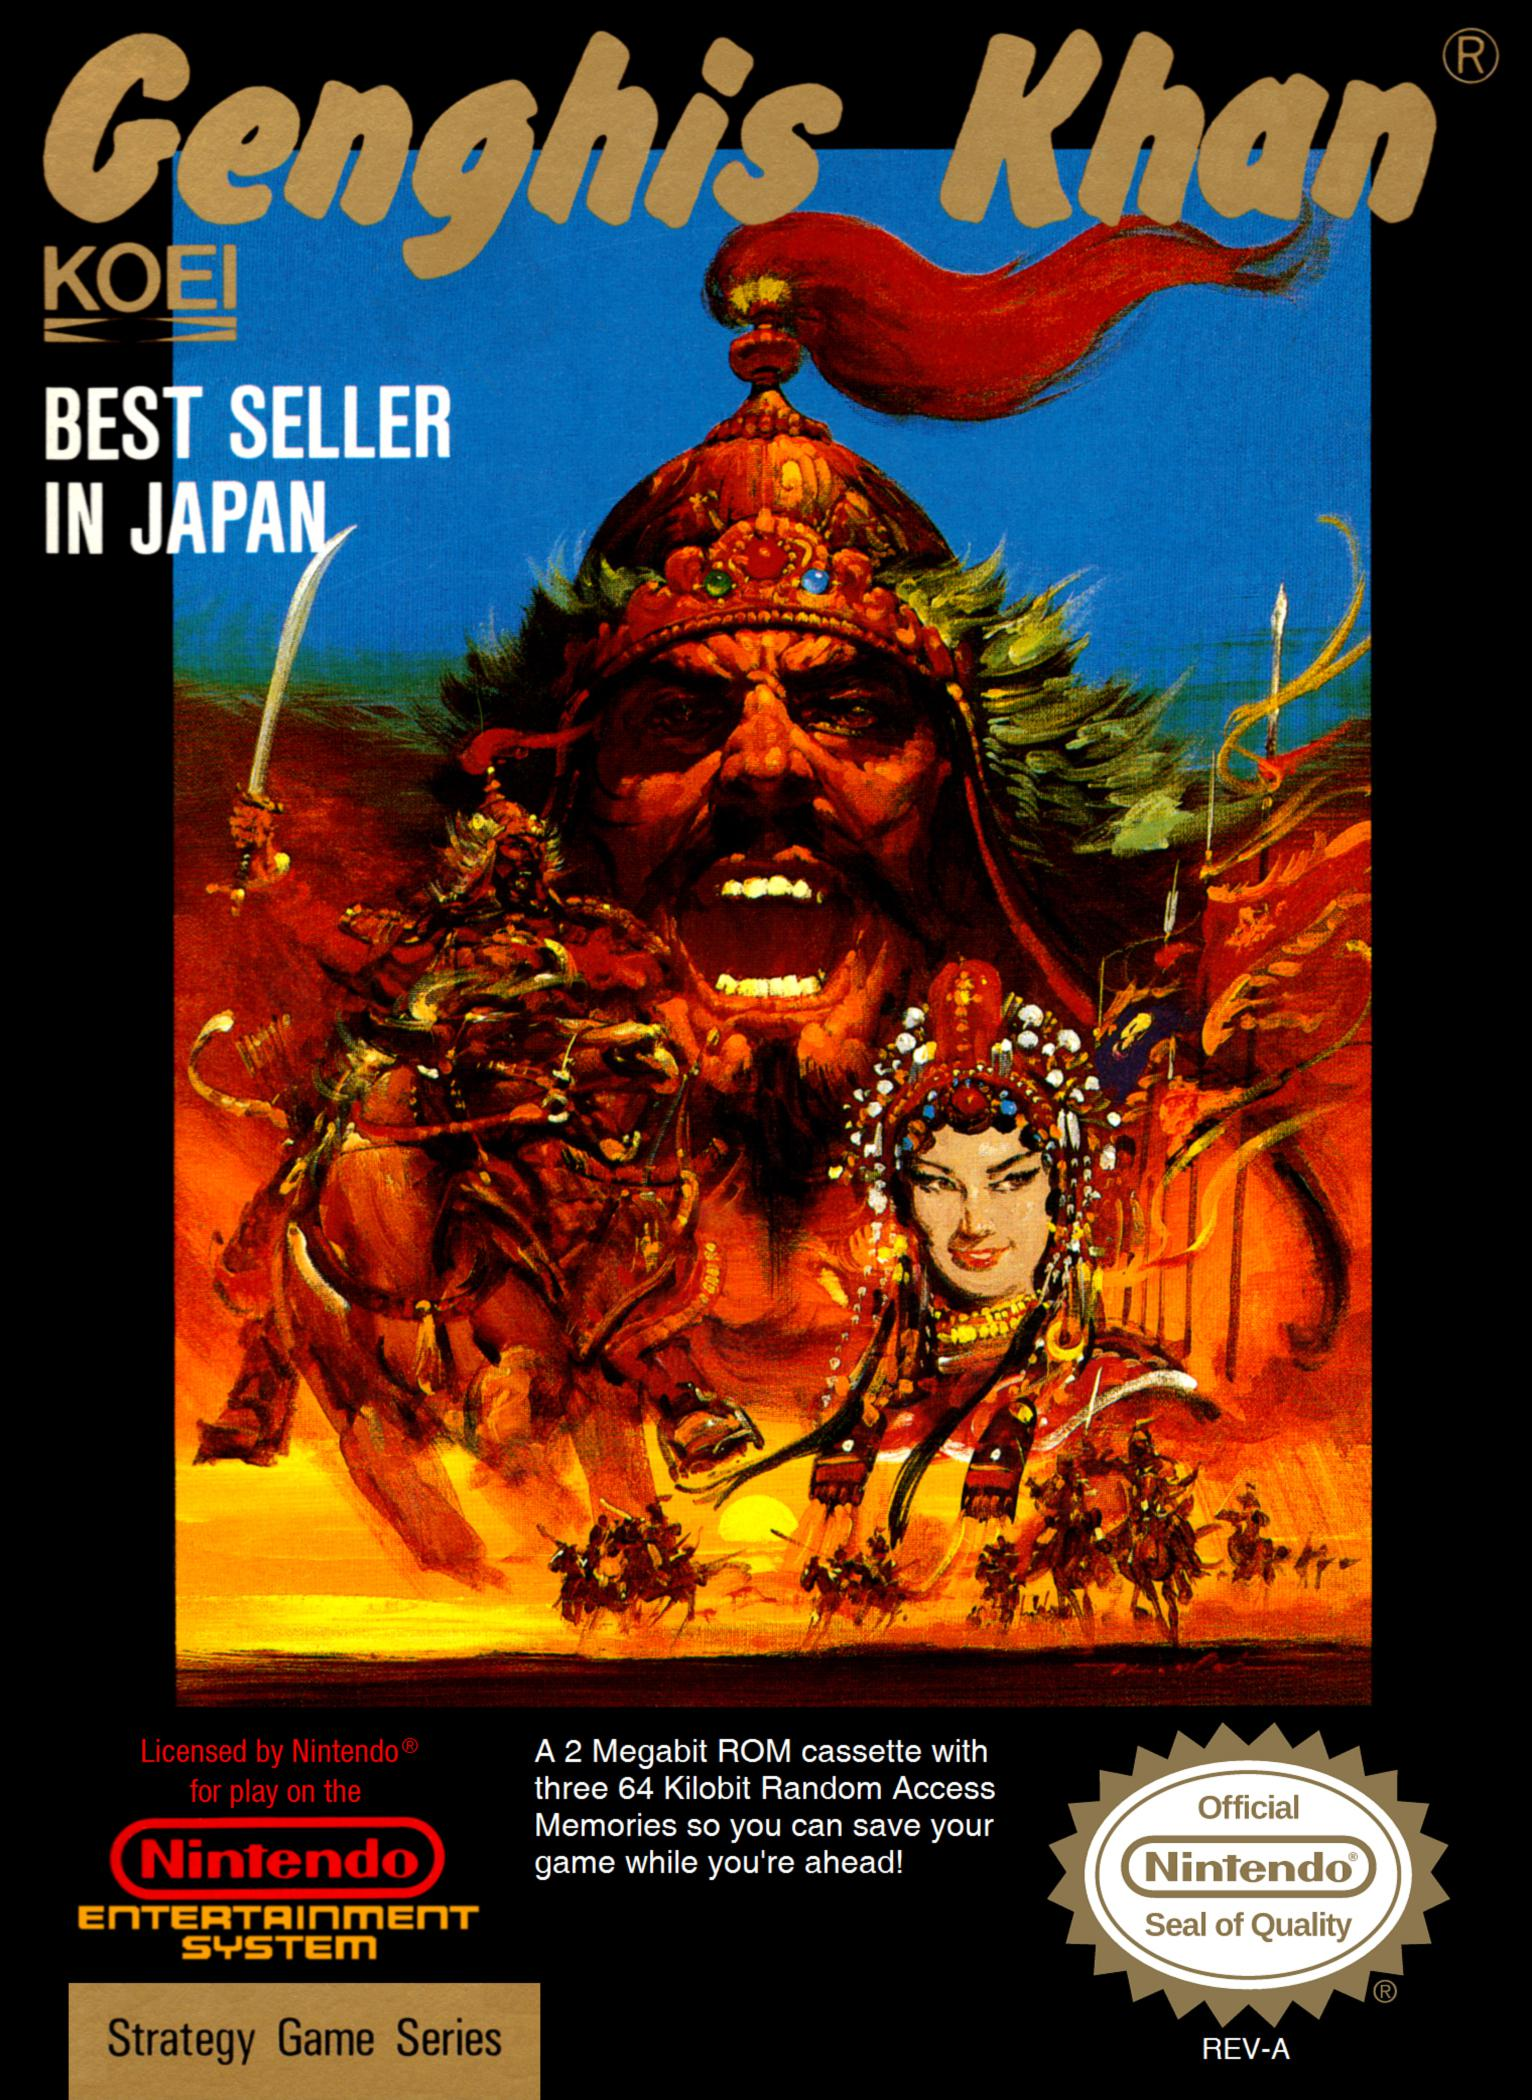 Take on the NES Library » #134 – Genghis Khan